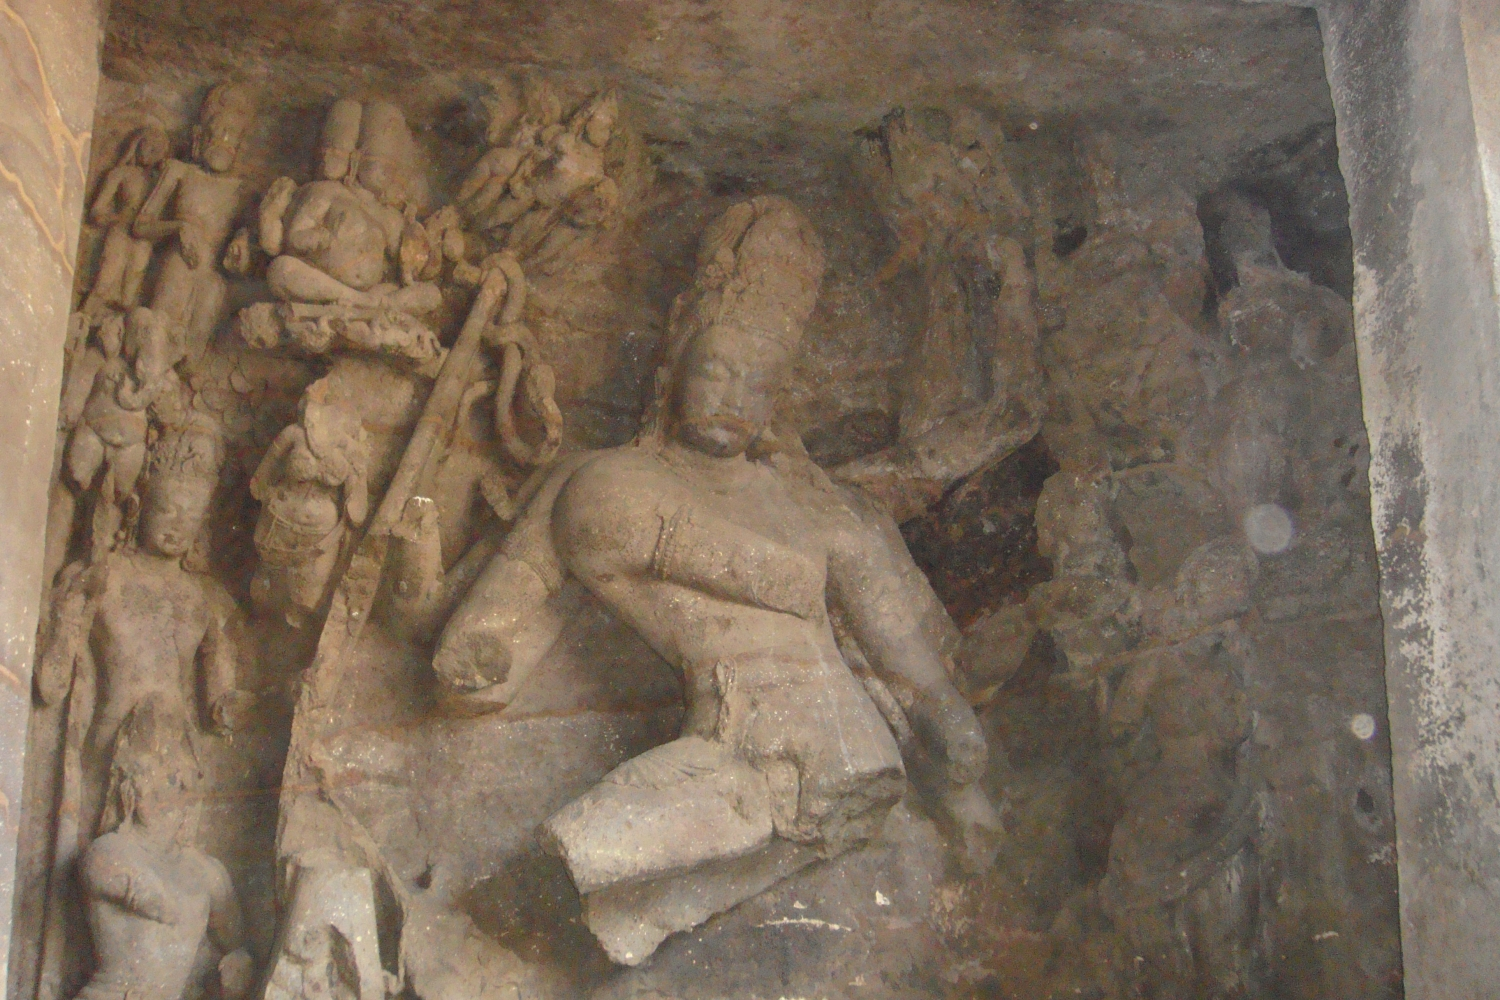 \Elephanta Caves, Mumbai, India - 2009